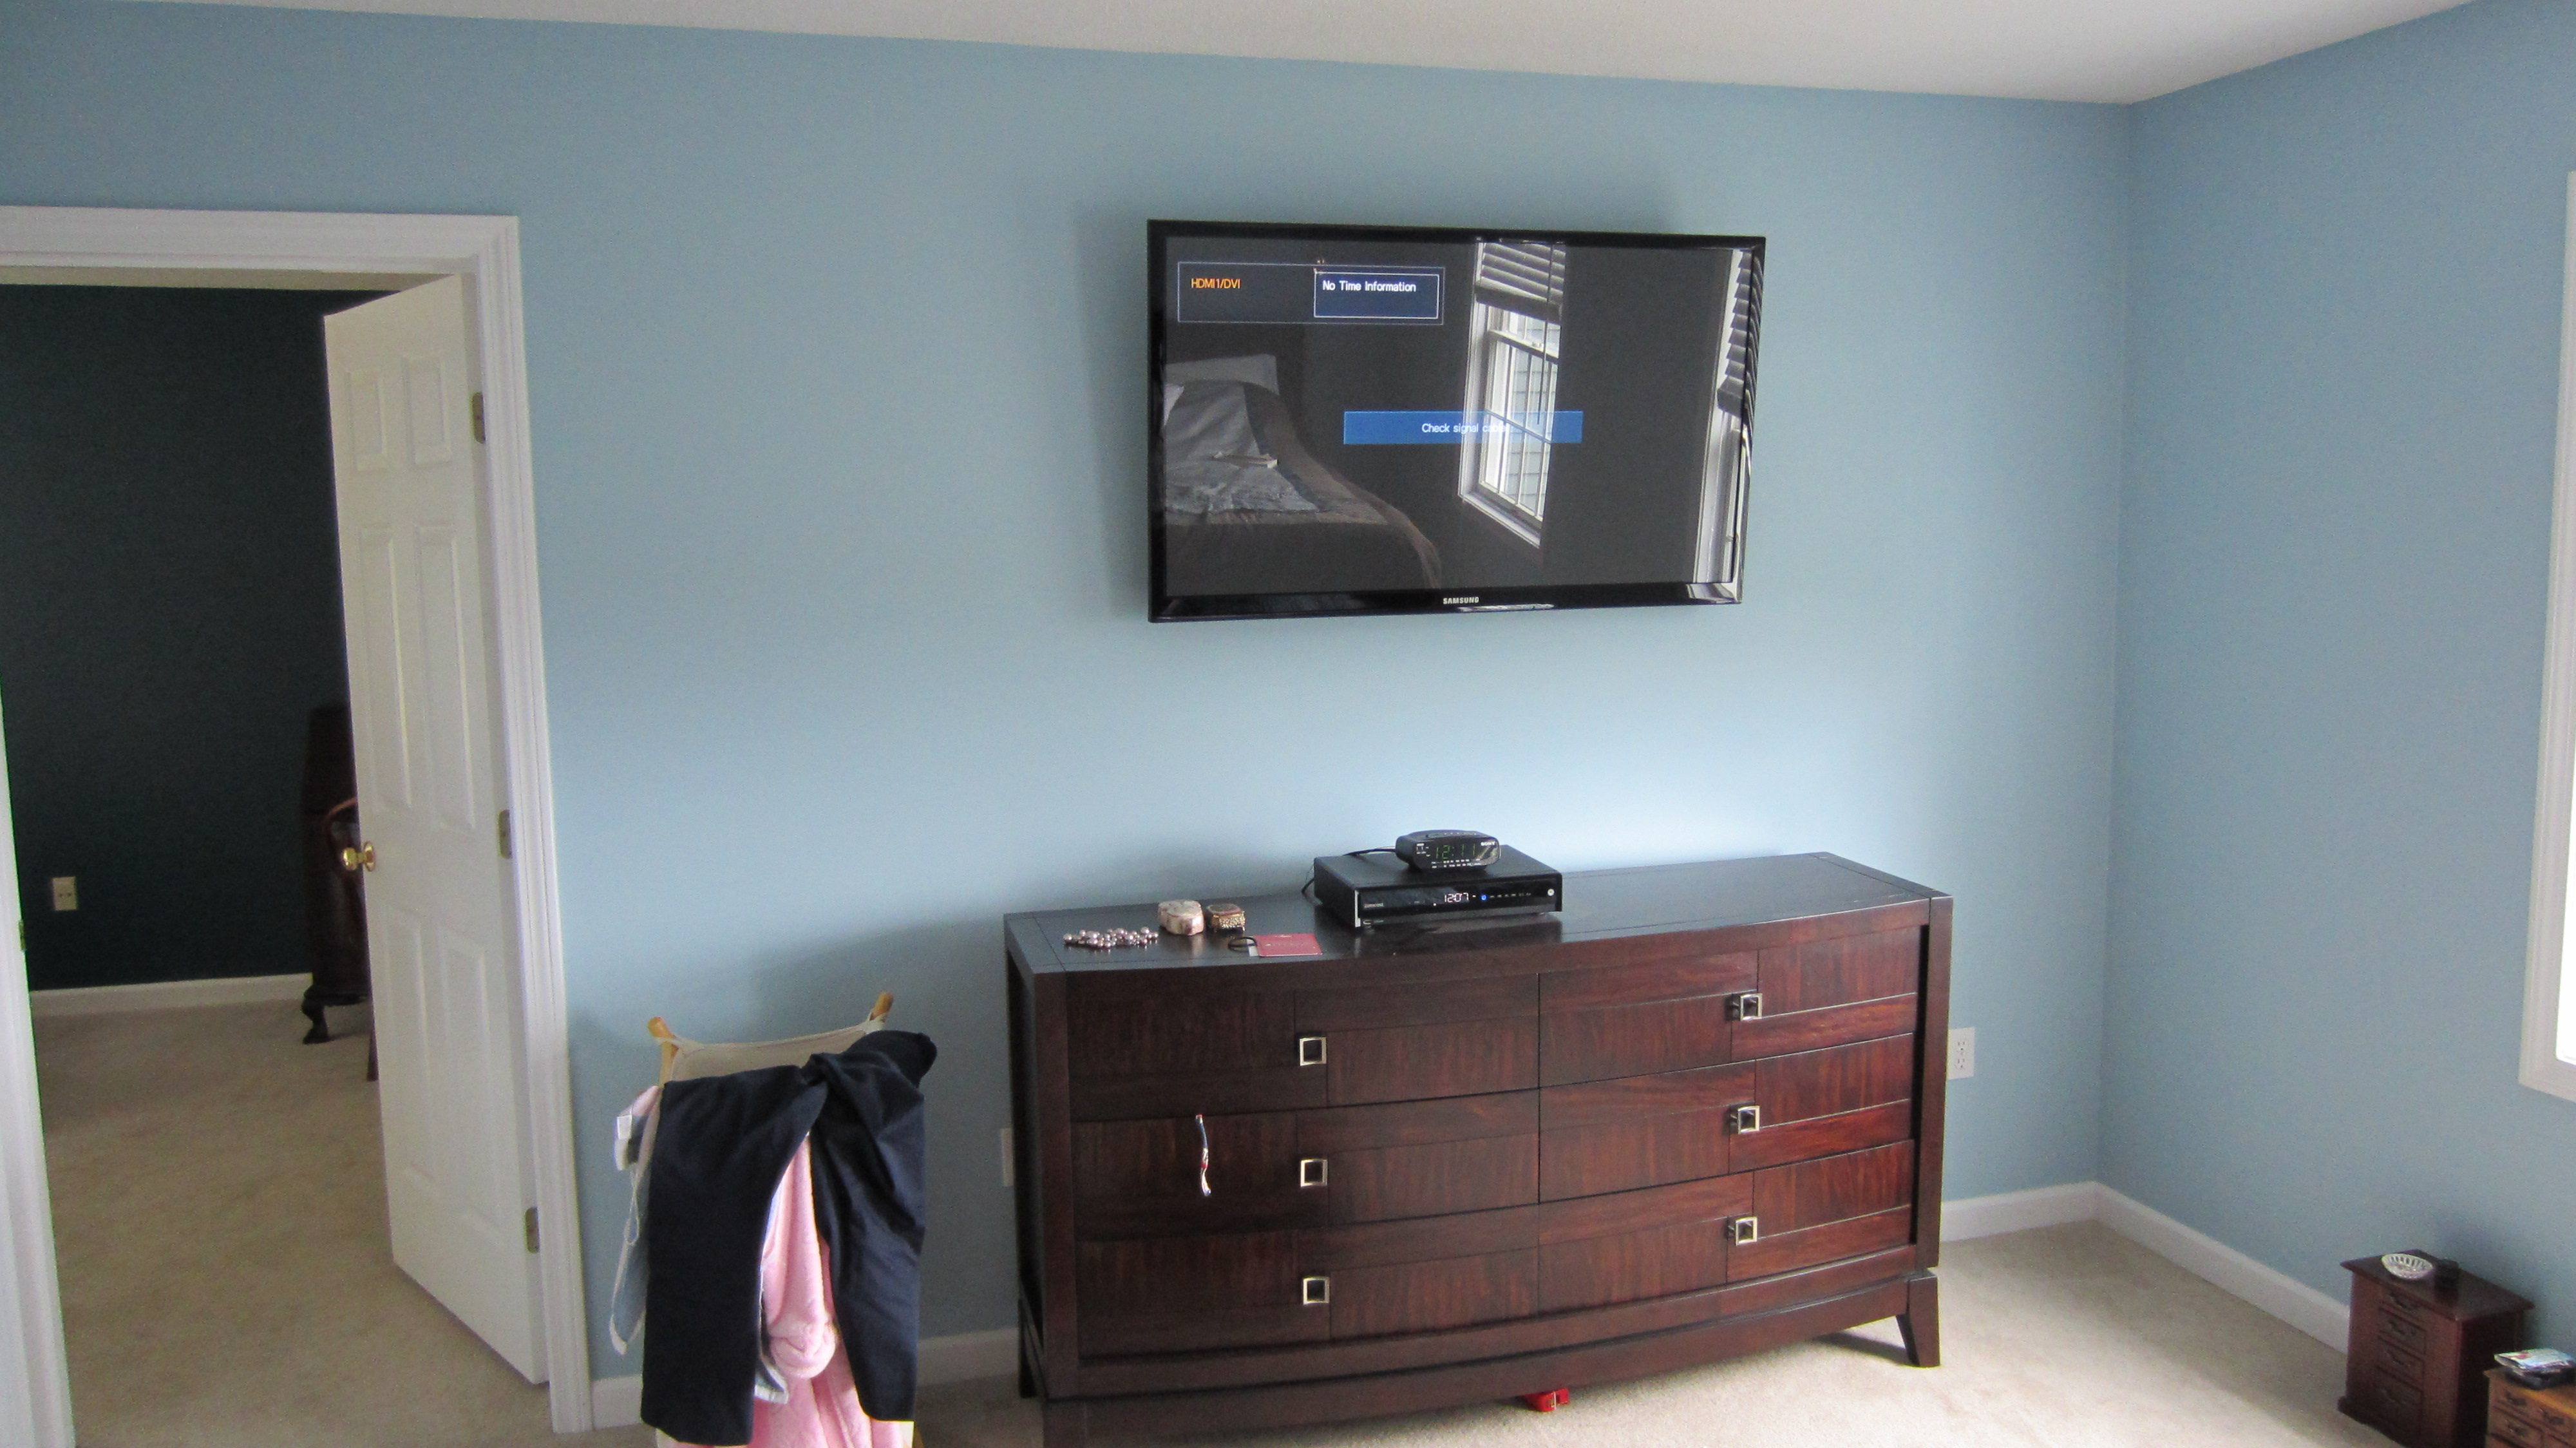 burlington, ct tv mounting on wall in bedroom | Home Theater ...